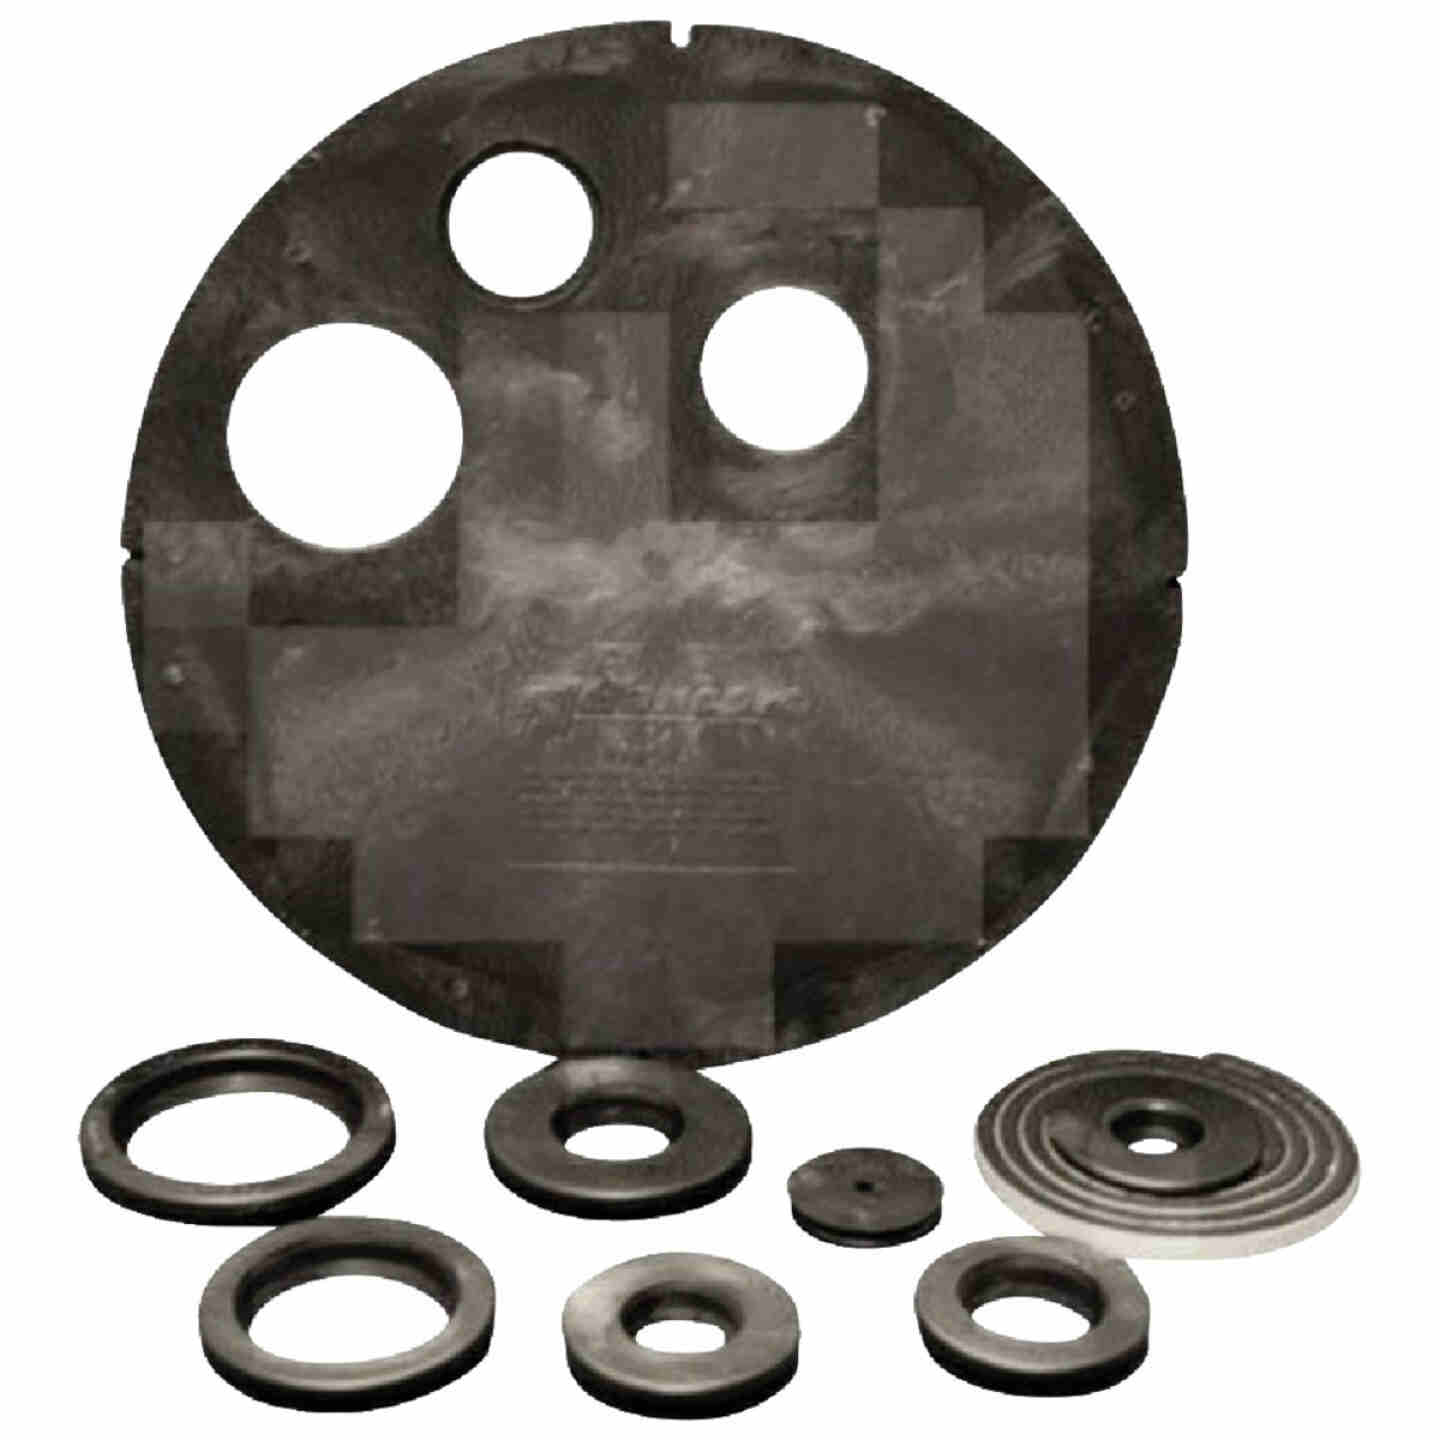 ADS HDPE 20 In. Dia. Radon Vented Sump Lid Image 1